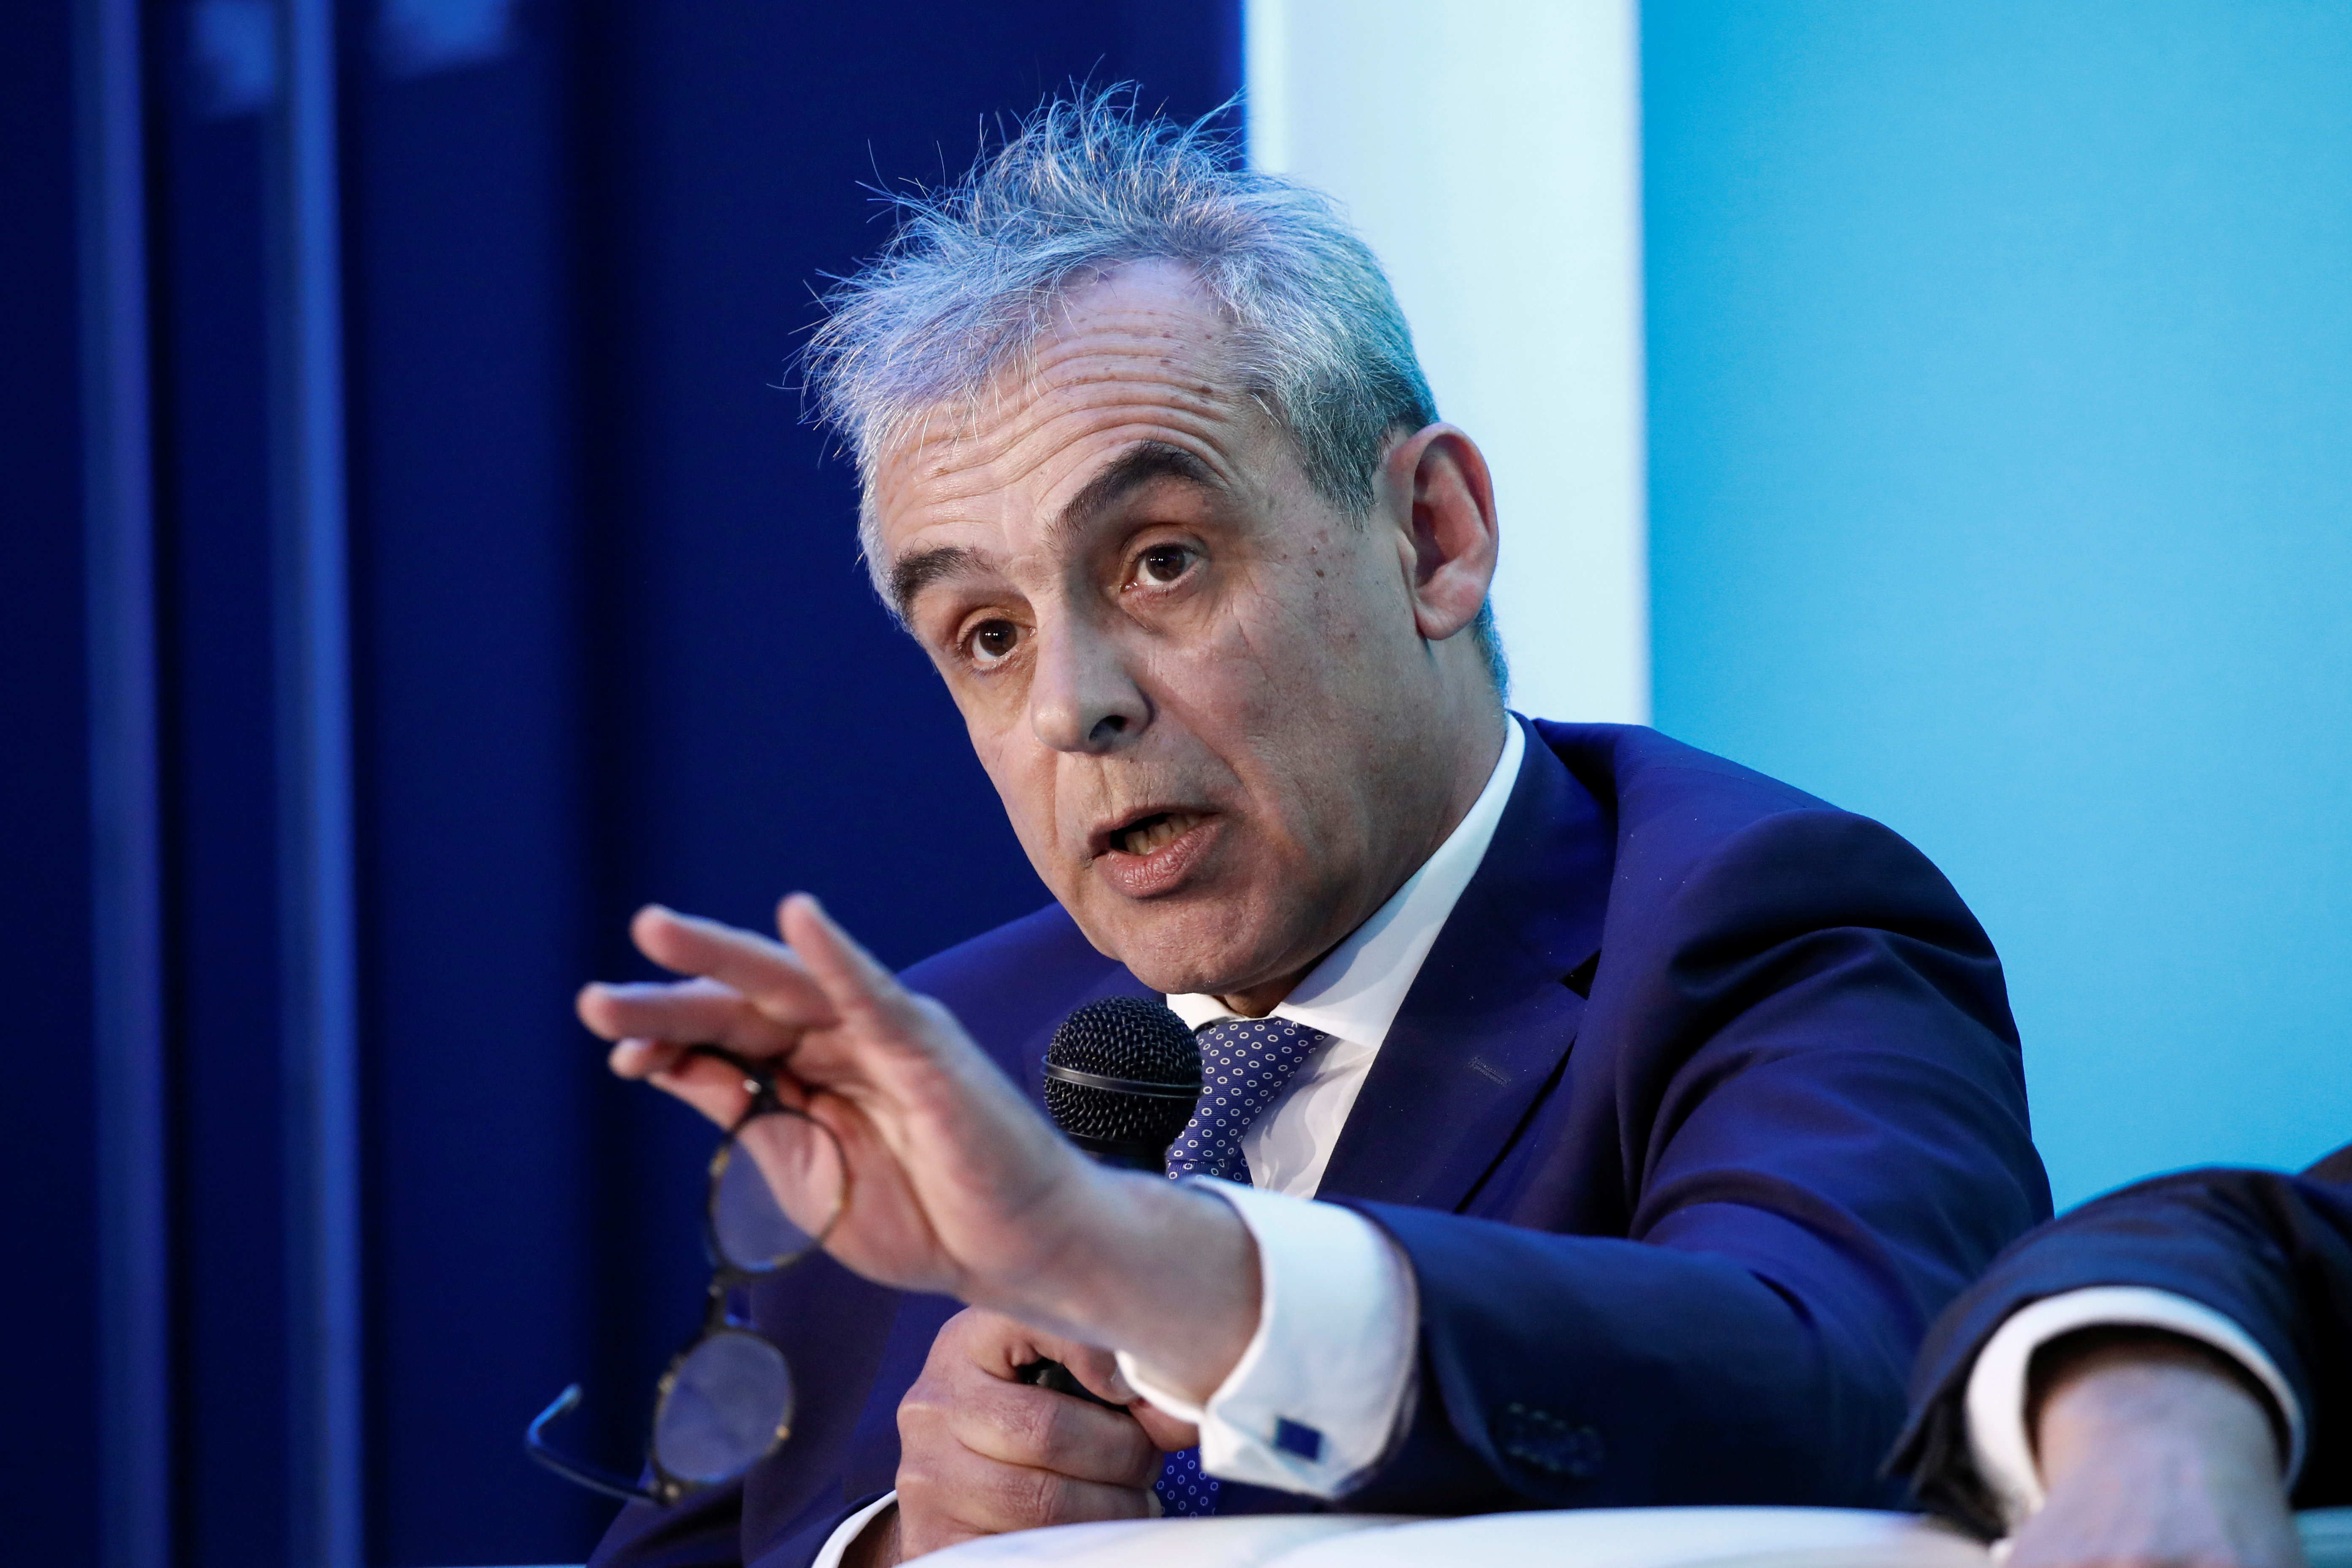 Pascal Blanque, Chief Investment Officer of Amundi, attends the Euronext stock exchange's annual conference in Paris, France, January 14, 2020. REUTERS/Benoit Tessier/Files